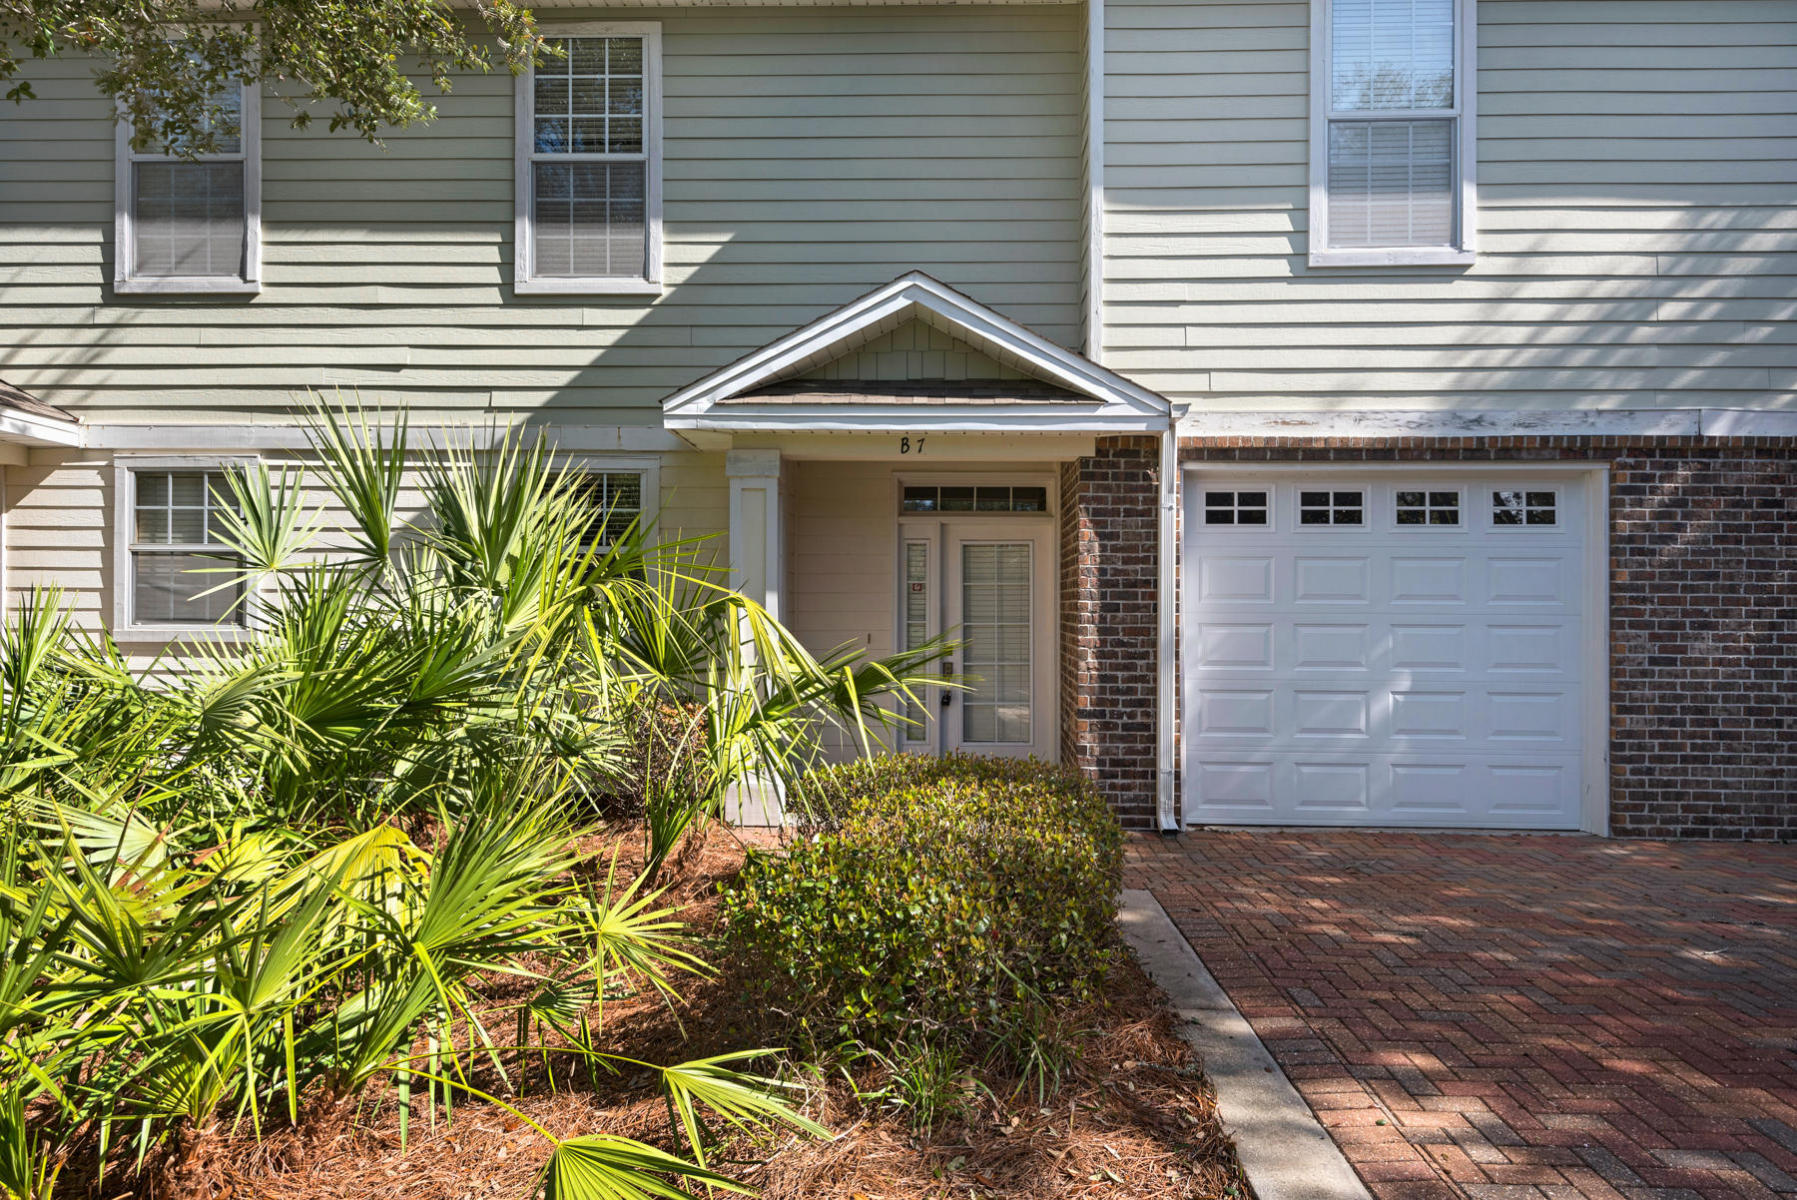 139 SIBERT AVENUE #1 - 9, DESTIN, FL 32541